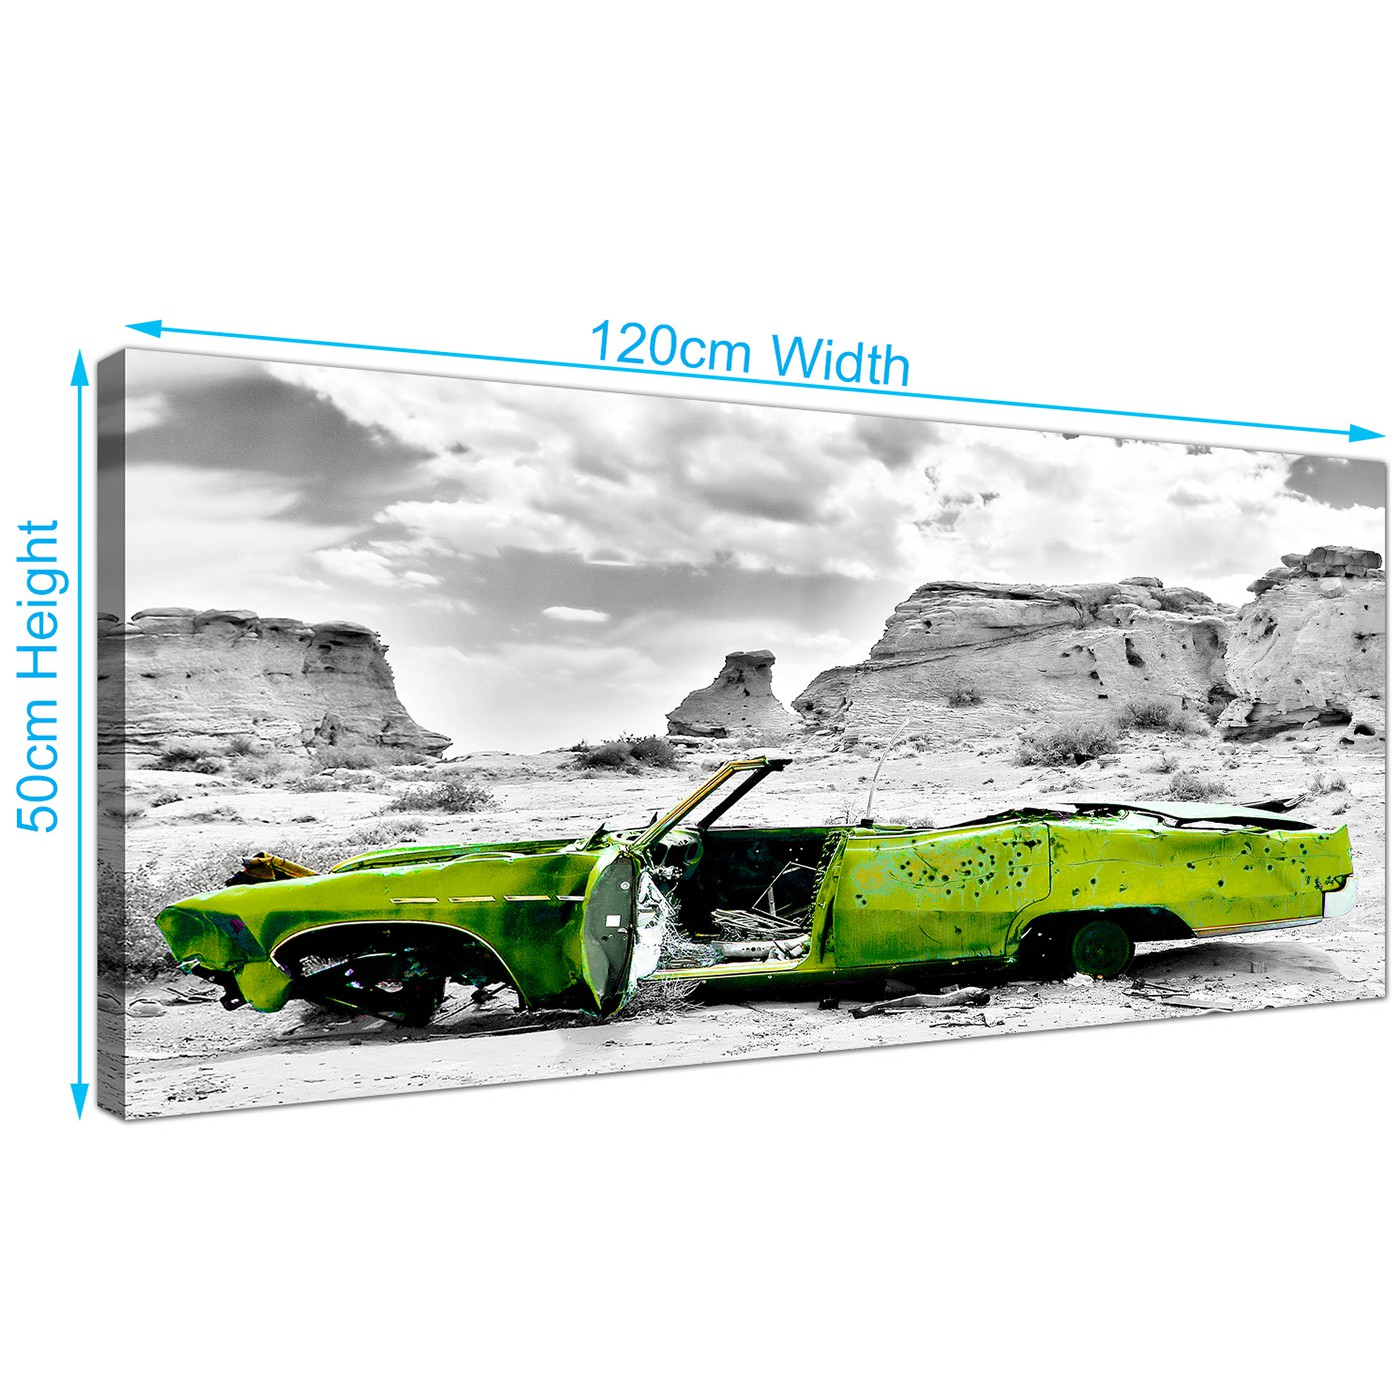 Display Gallery Item 5; Large Car Canvas Pictures 120cm x 50cm 1143 Display Gallery Item 6 ...  sc 1 st  Wallfillers & Cheap Black and White Canvas Wall Art of a Green Car